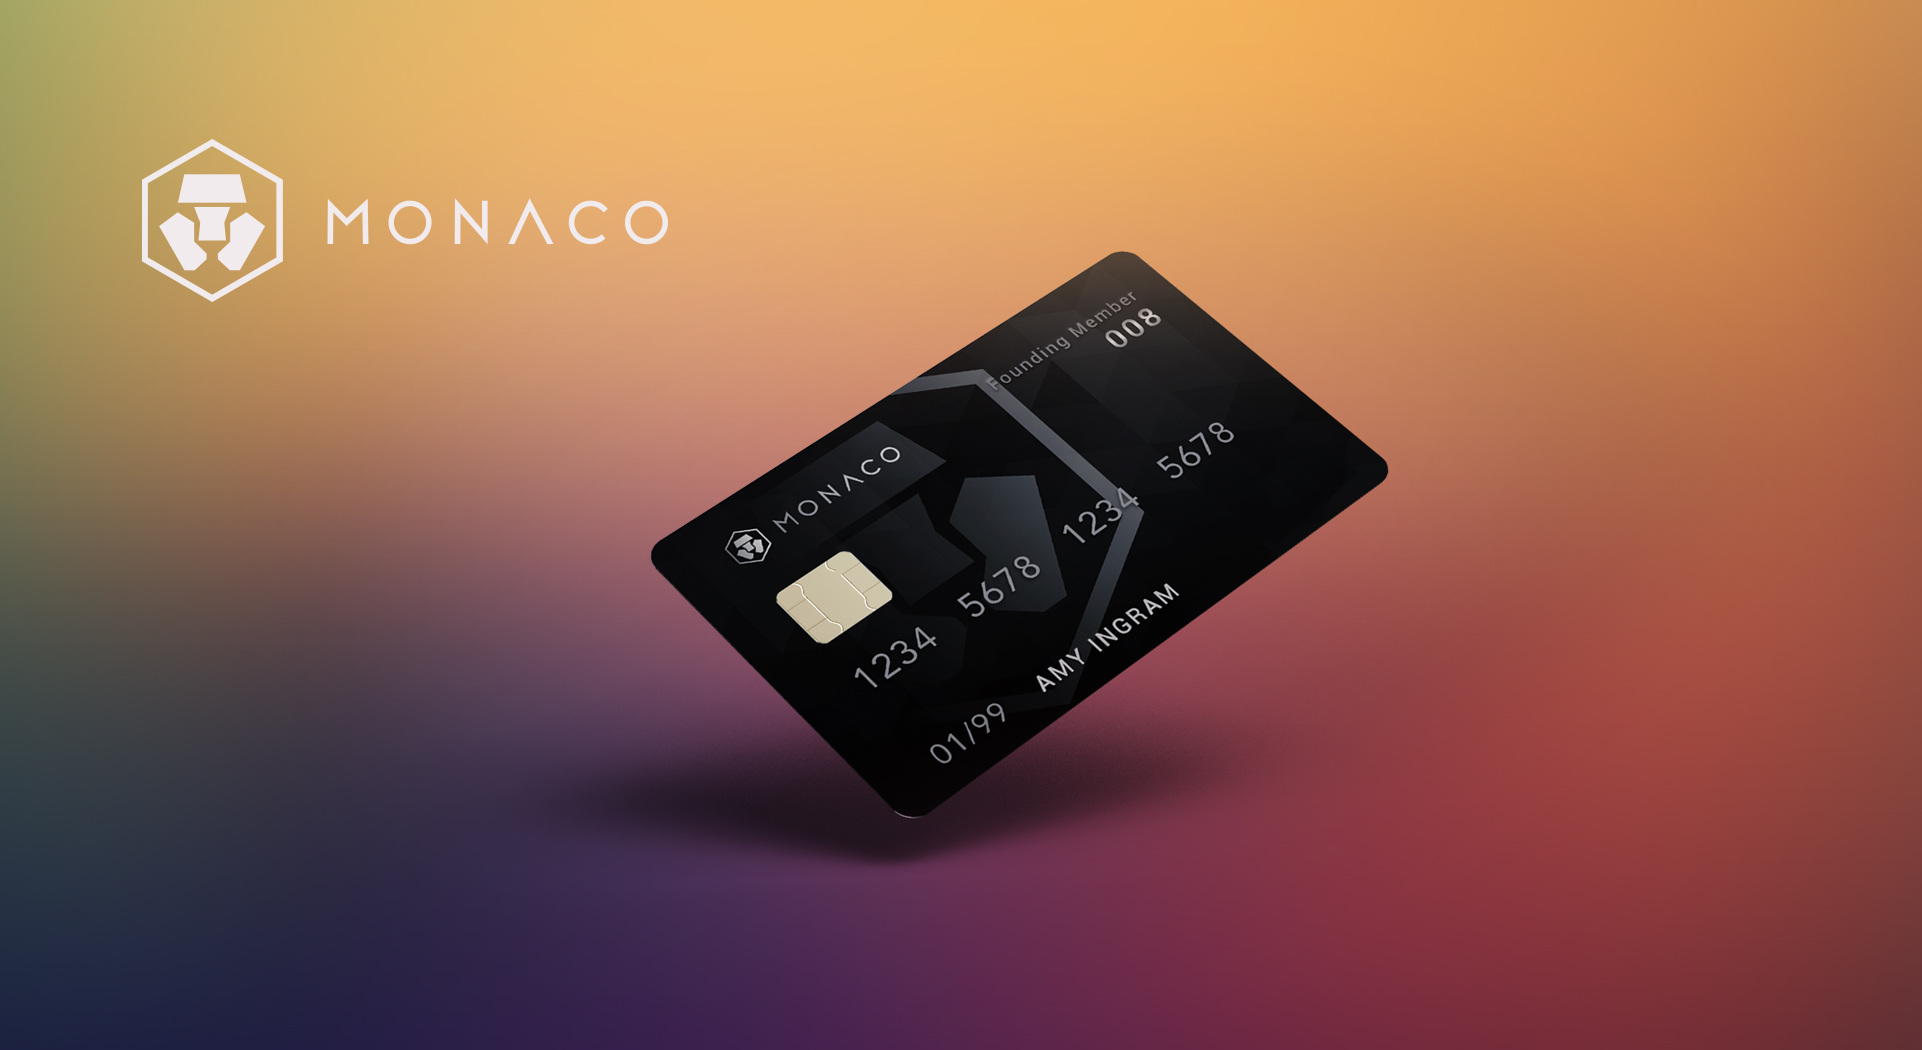 Monaco Card Review The Visa Card Revolution 1st Mining Rig